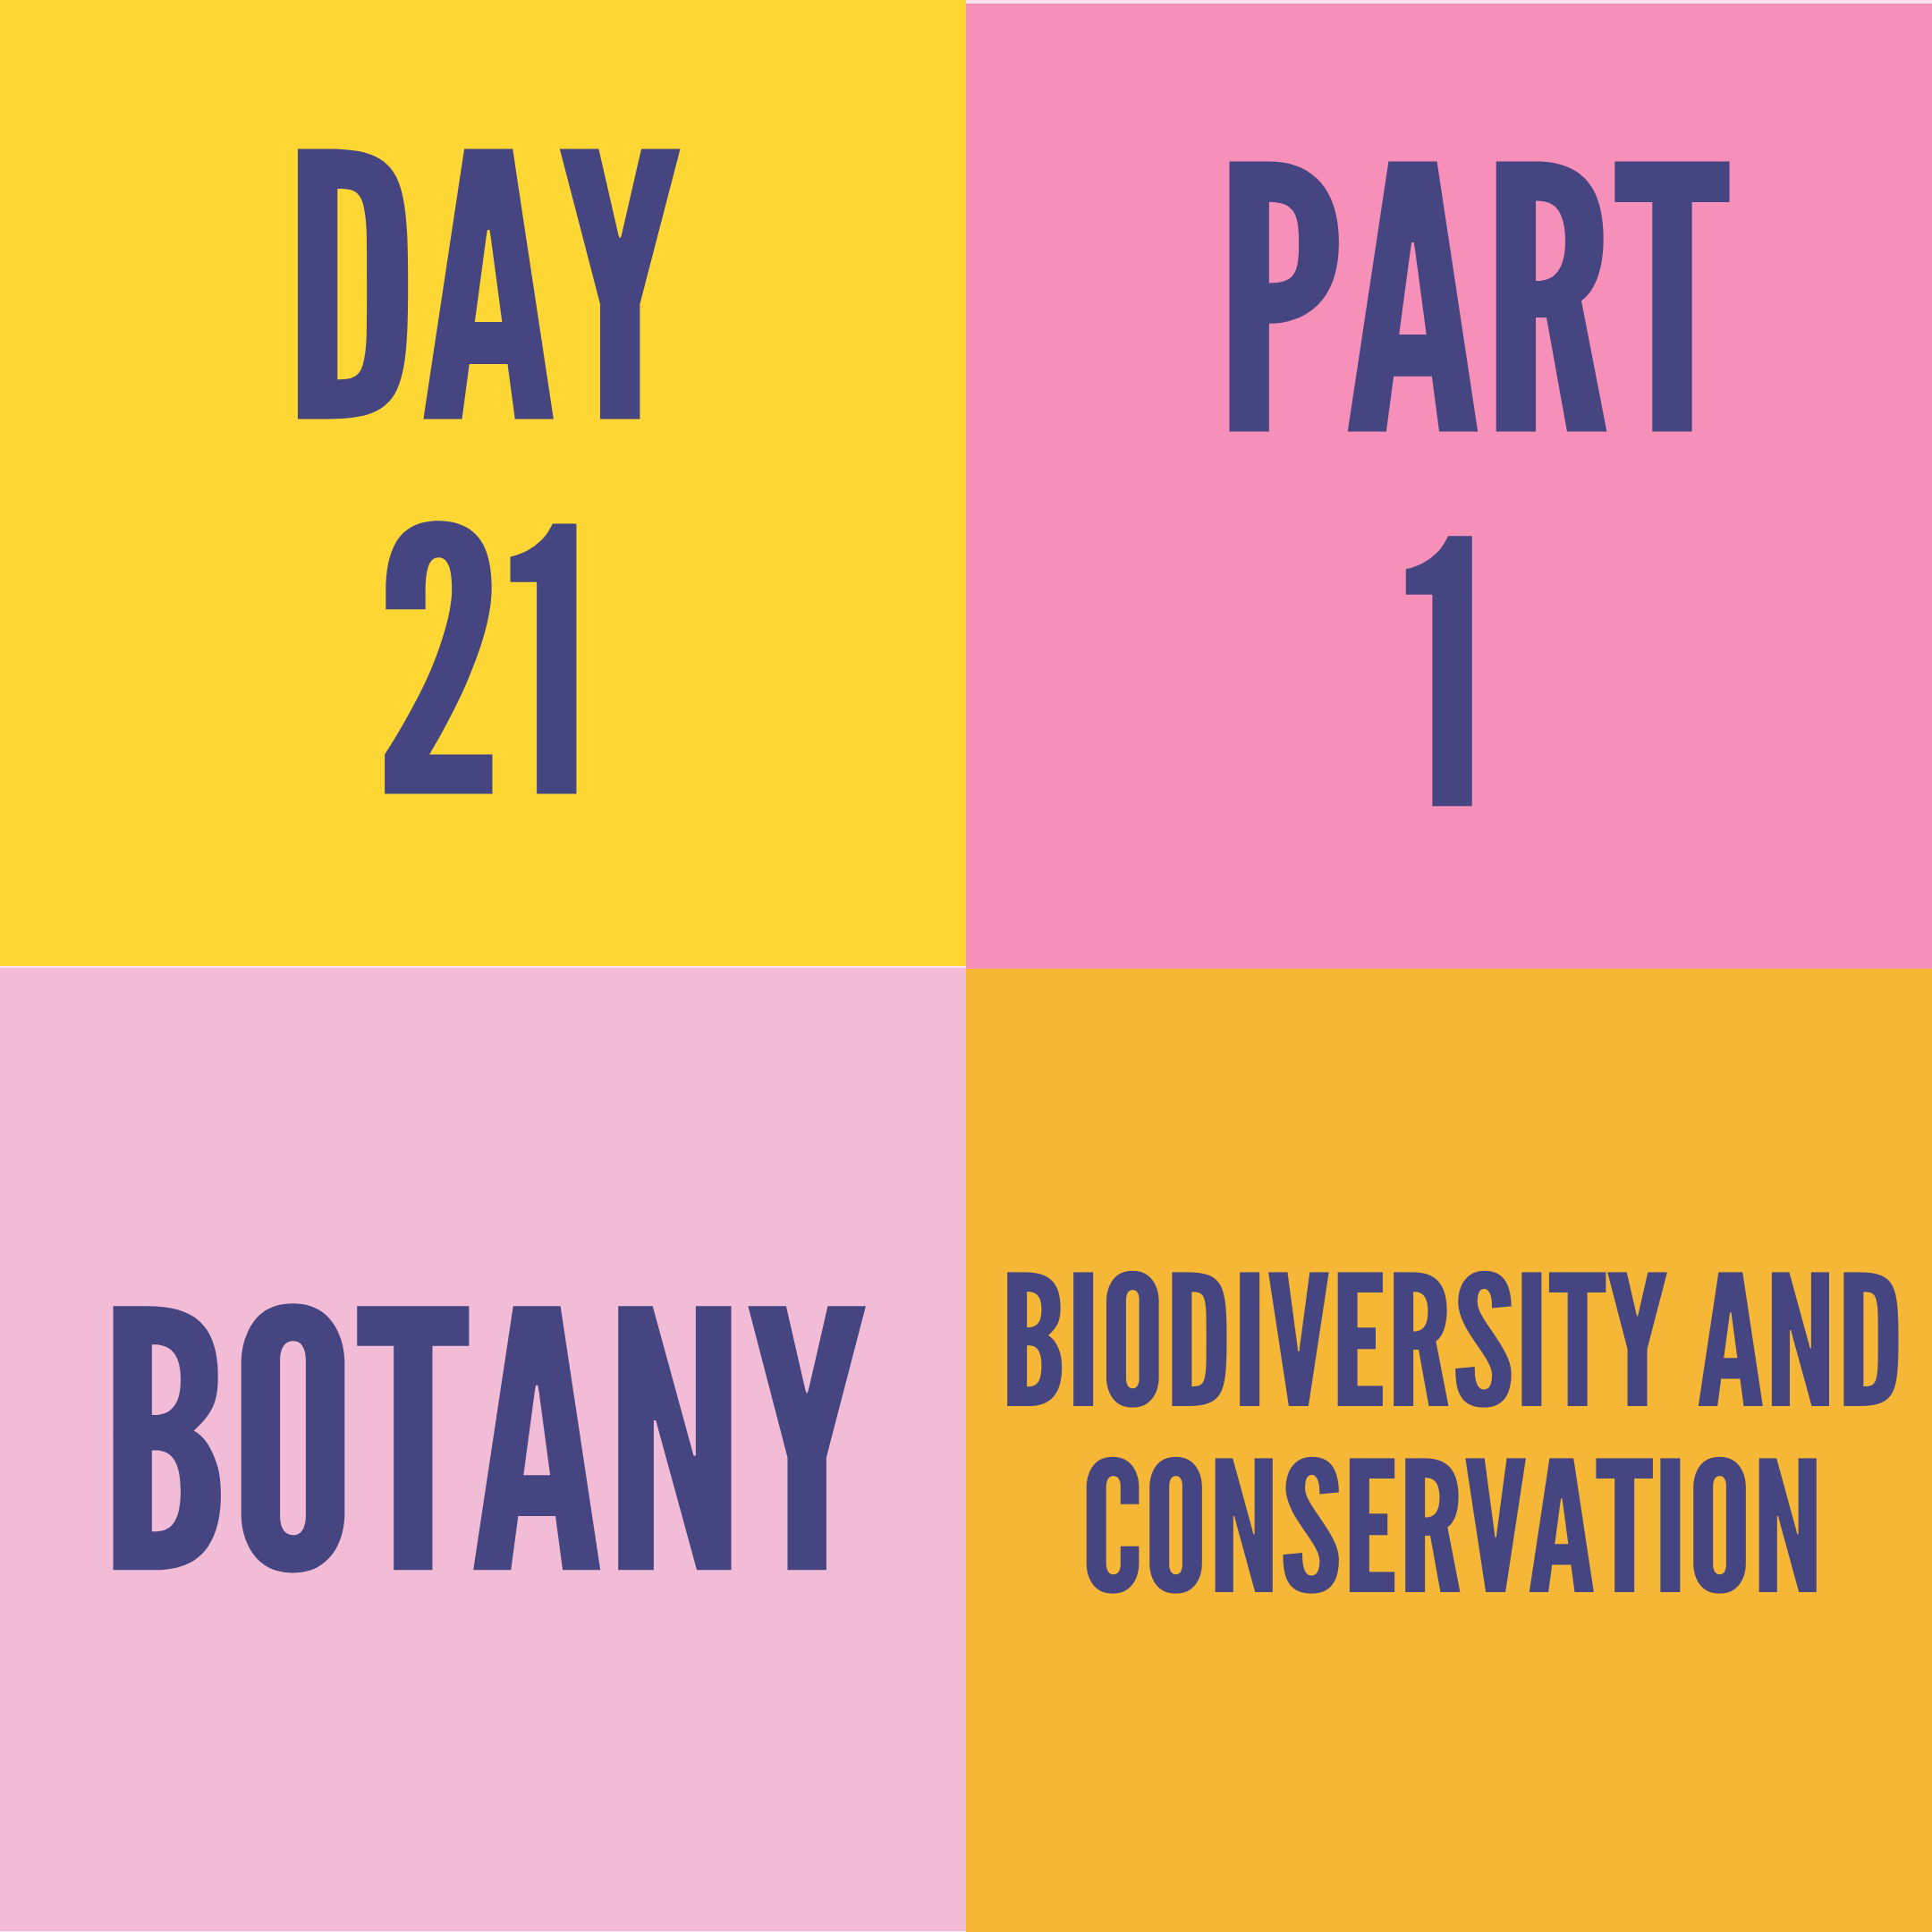 DAY-21 PART-1 BIODIVERSITY AND CONSERVATION